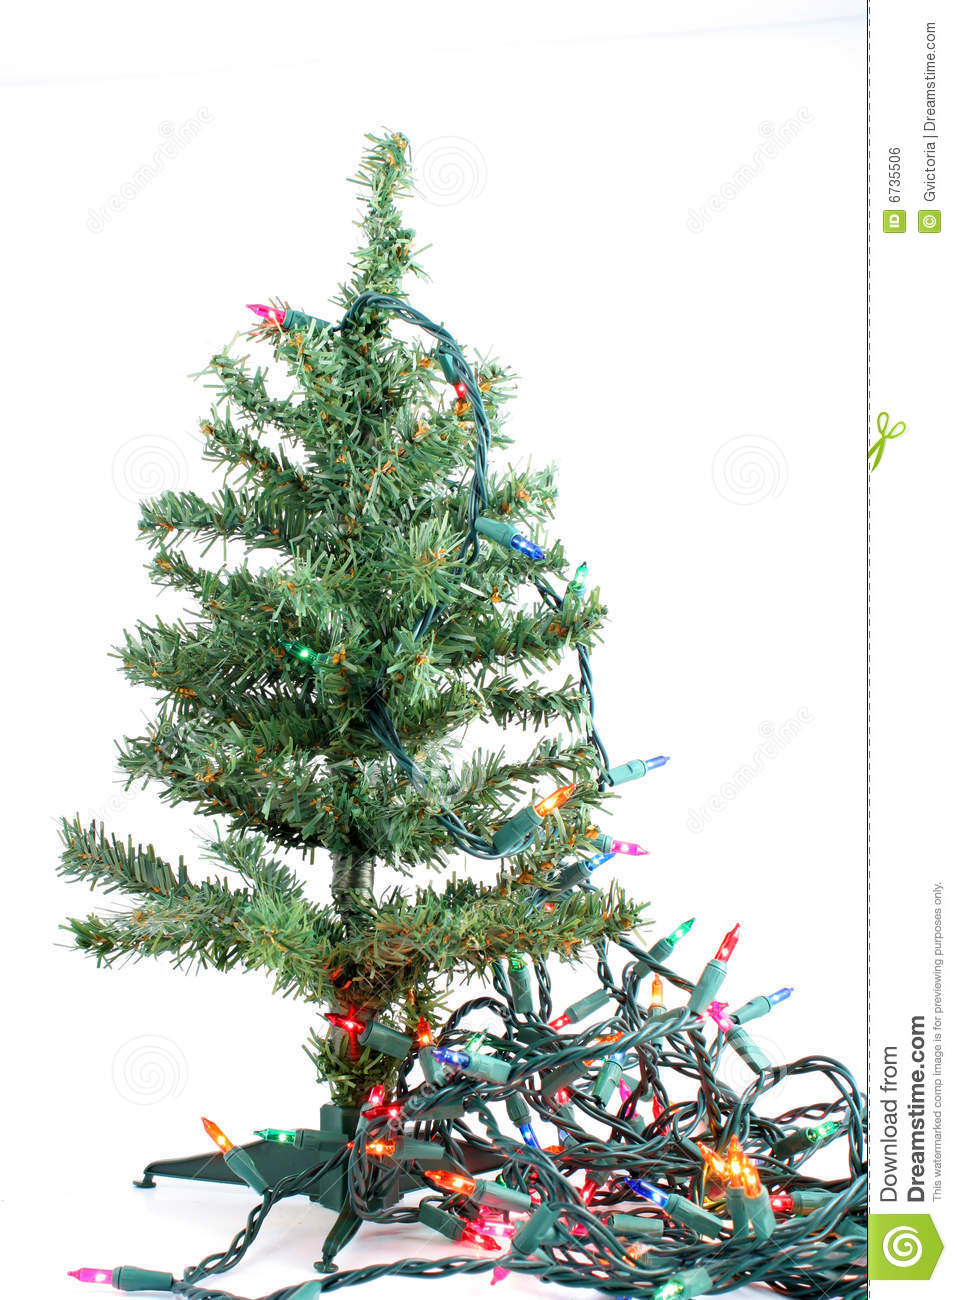 small fake green christmas tree waiting to be decorated on a white background with colorful christmas lights hanging